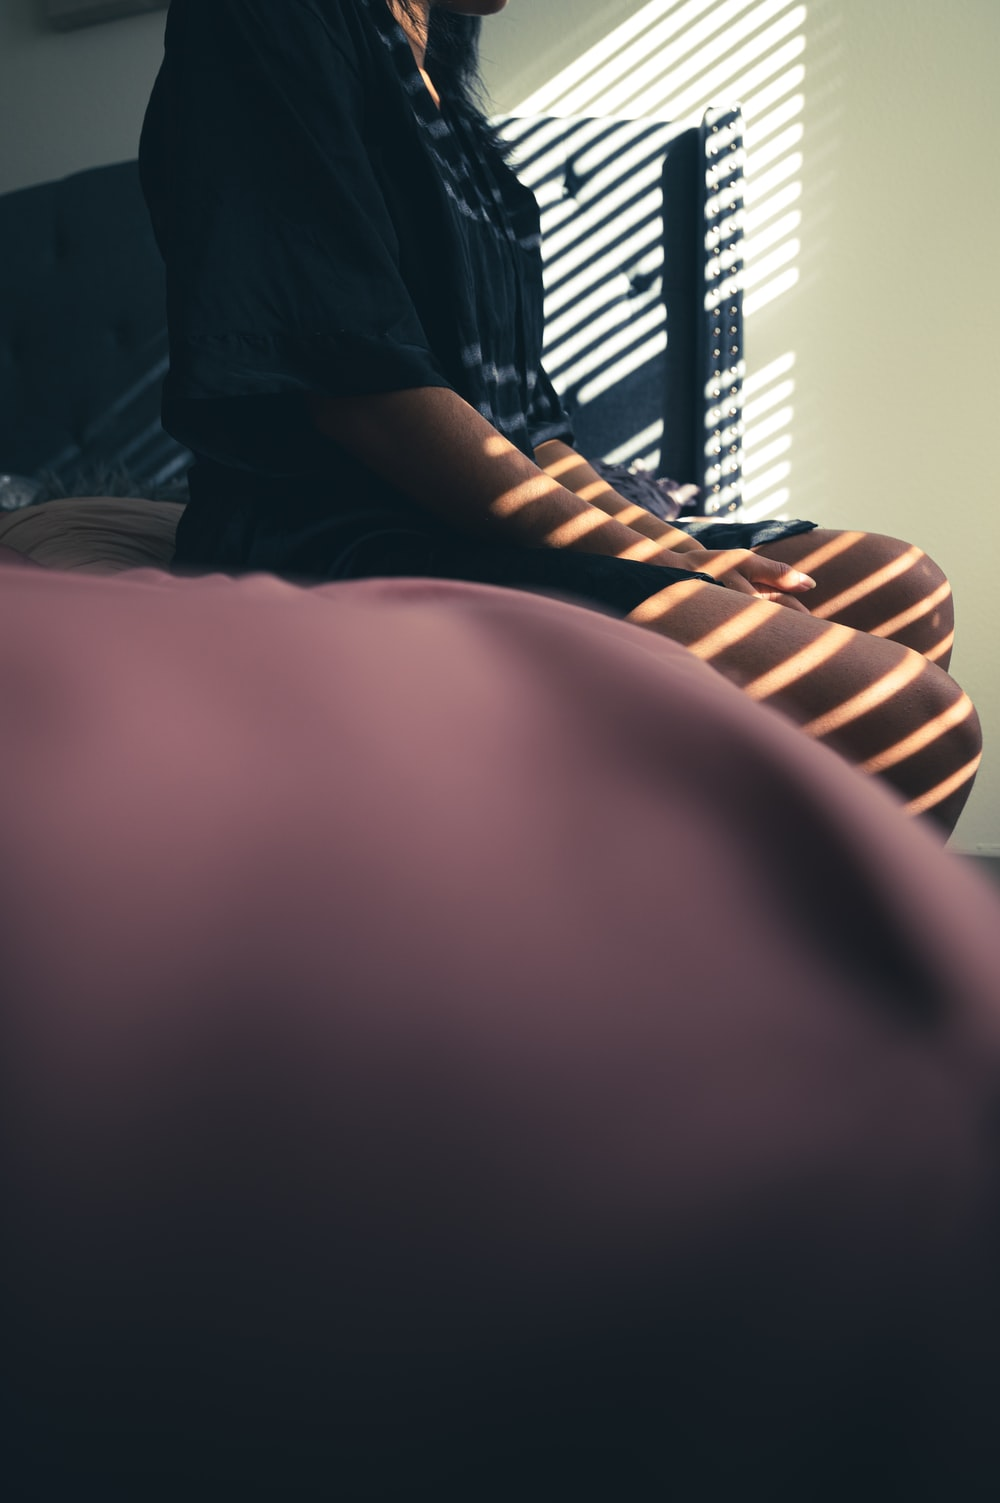 person in black shirt sitting on bed